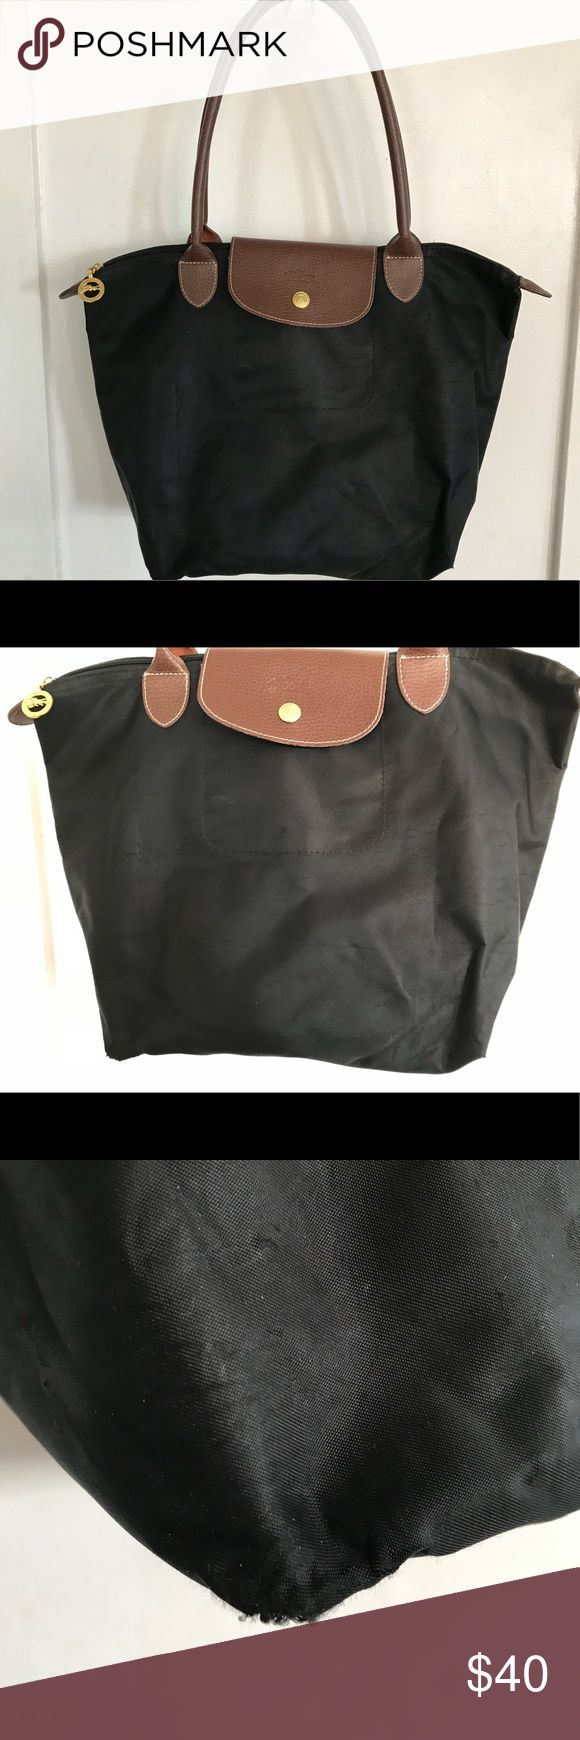 LongChamp Le Pliages Nylon Tote Bag Good condition but has flaws. The bottom corners have a small on echo of them. Some bubbling on the nylon. SOLD AS IS. Longchamp Bags Totes